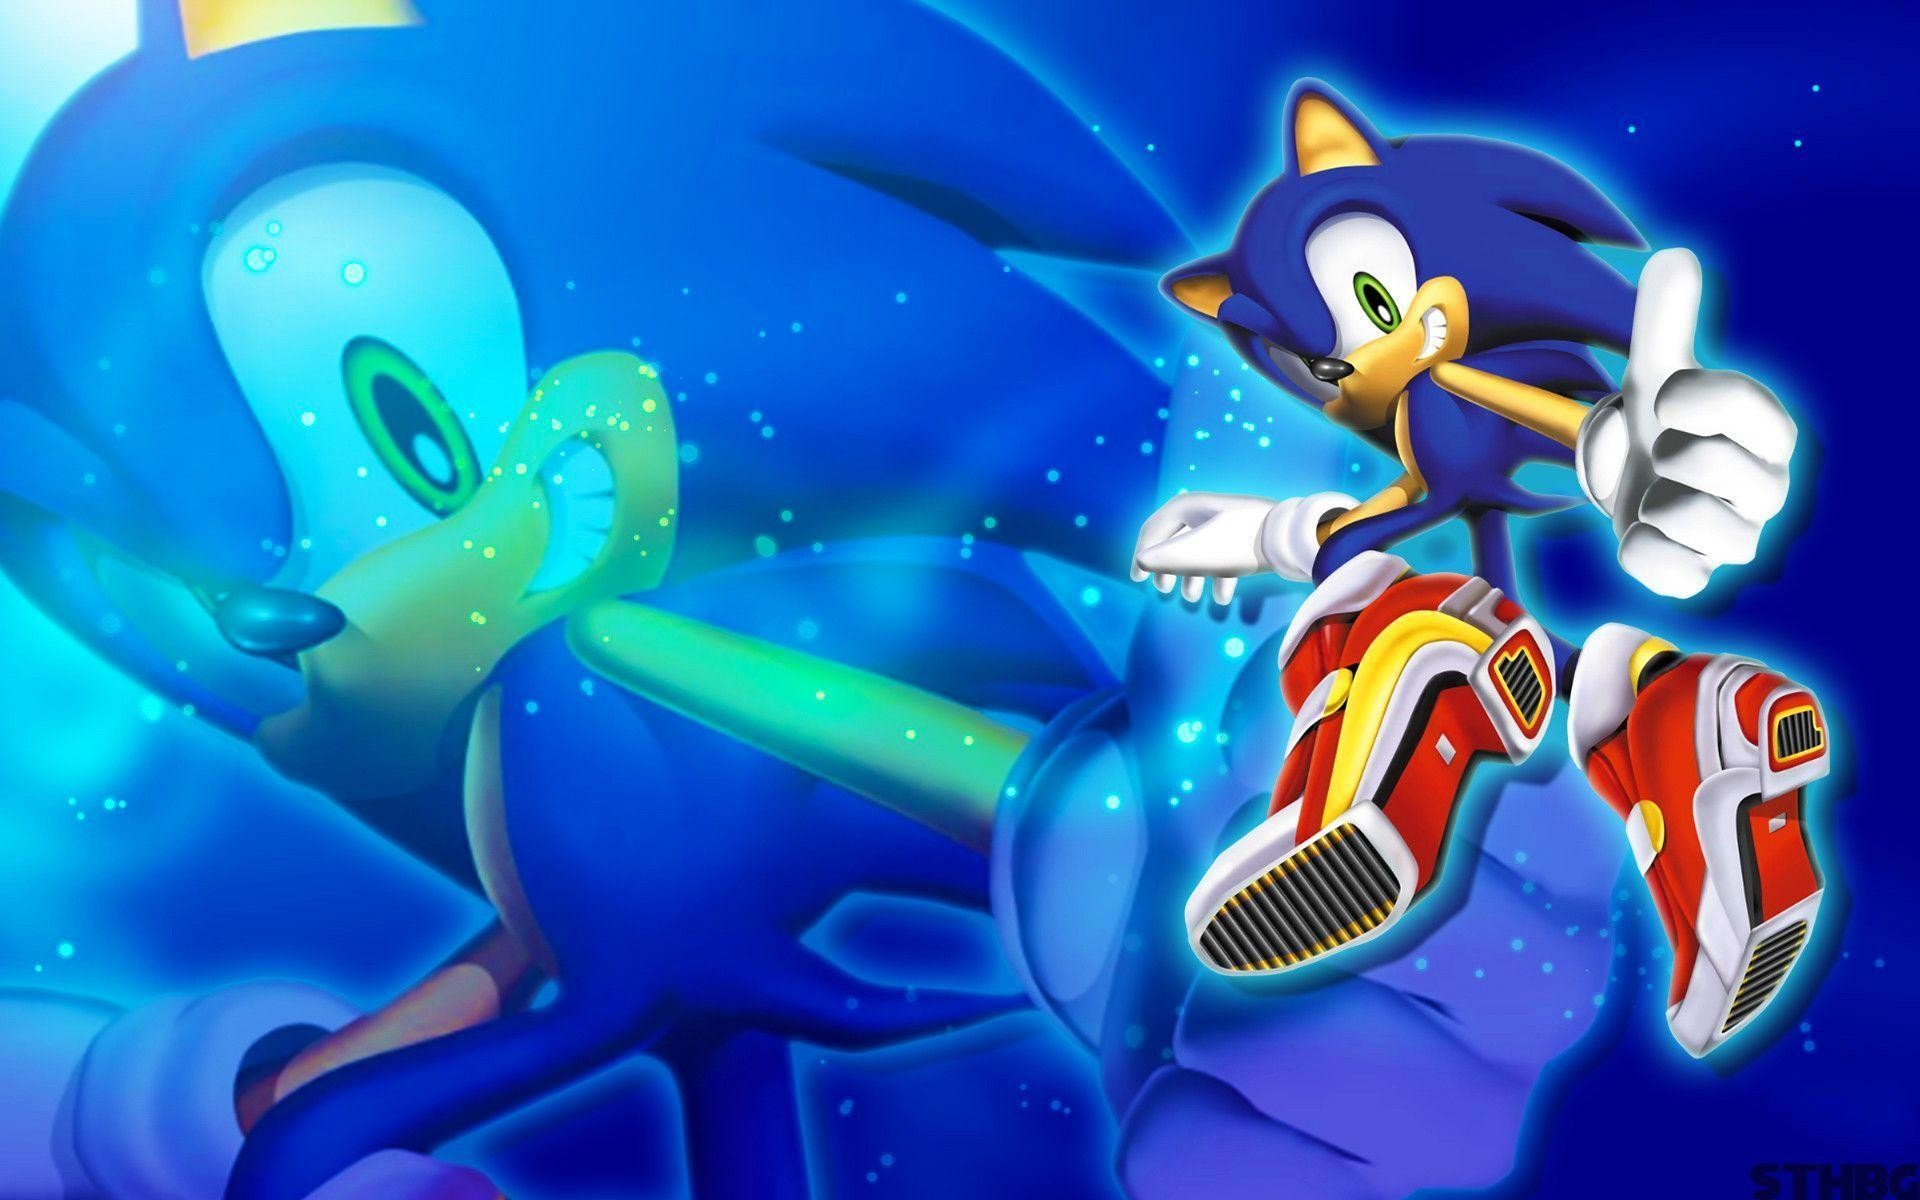 1920x1200 Sonic Adventure 2 Sonic Wallpaper by SonicTheHedgehogBG on DeviantArt